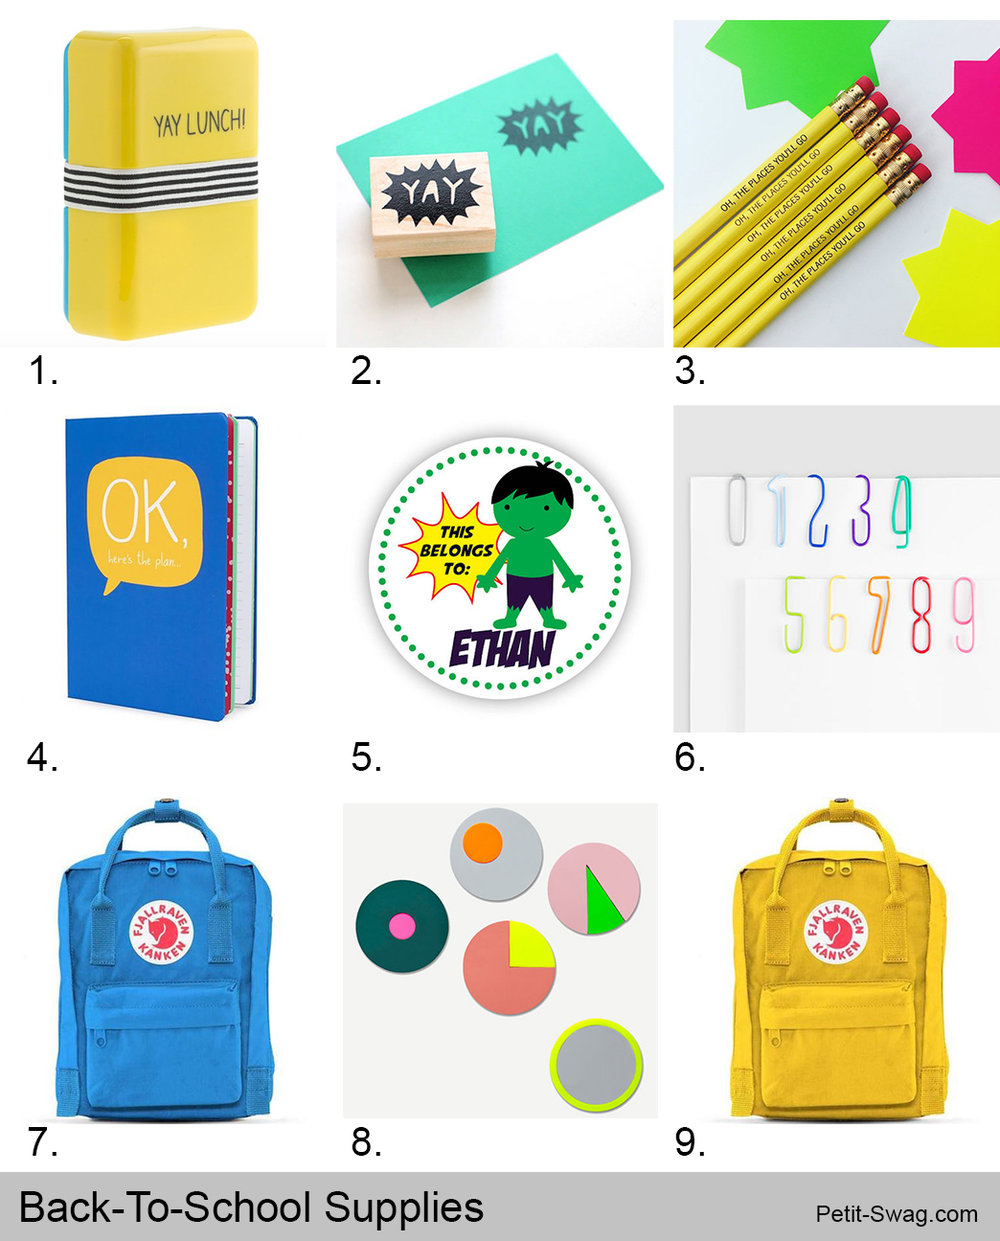 Back-To-School Supplies | Petit-Swag.com